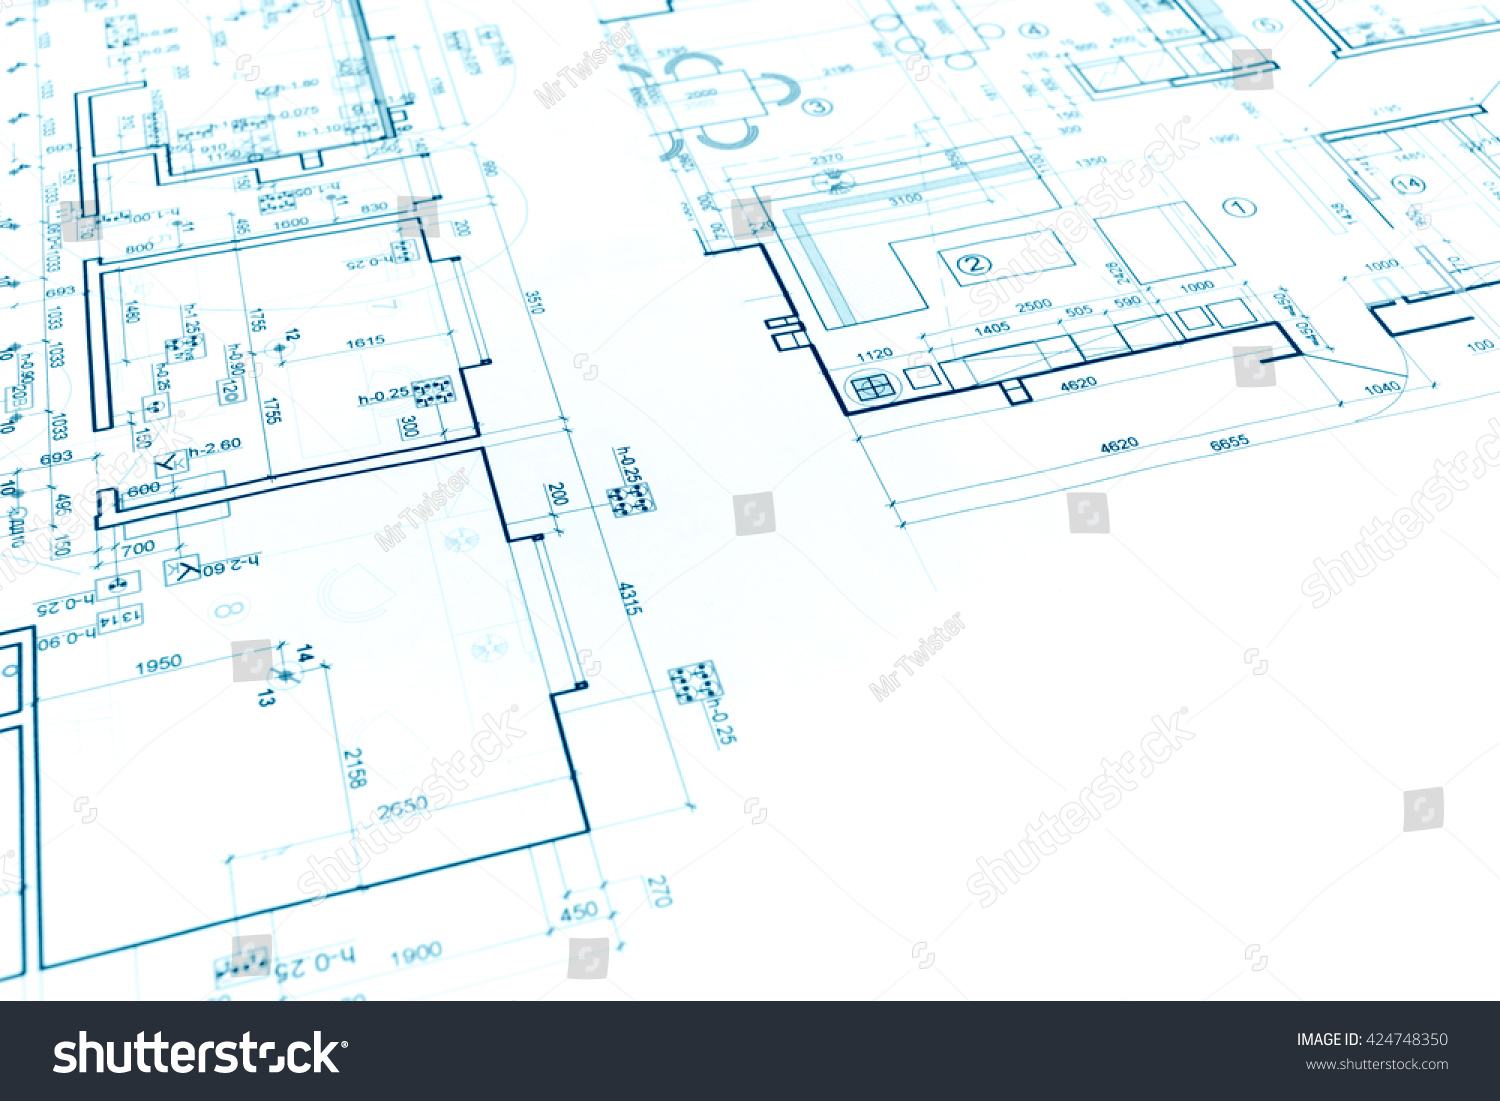 Floor plan project technical drawing construction stock floor plan project technical drawing construction blueprint background malvernweather Gallery